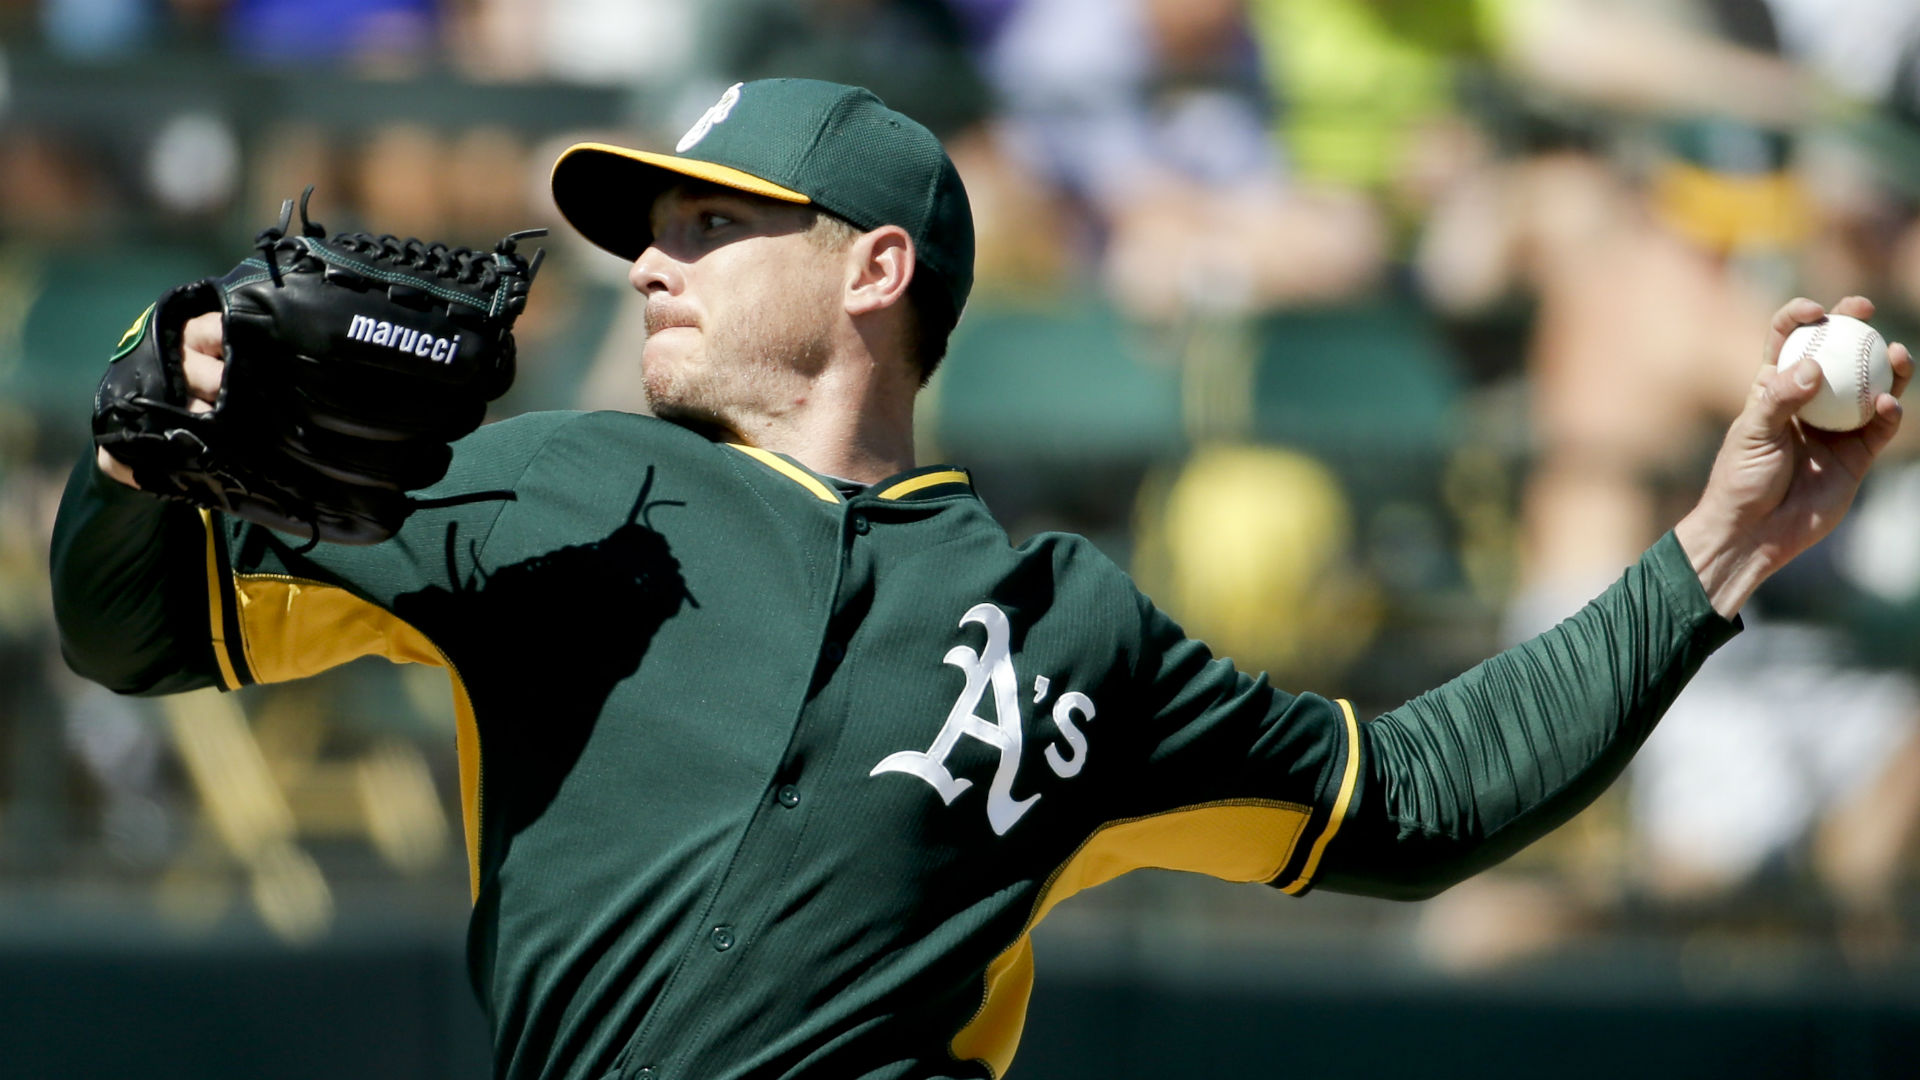 More fantasy baseball sleepers: Scott Kazmir among profitable power arms